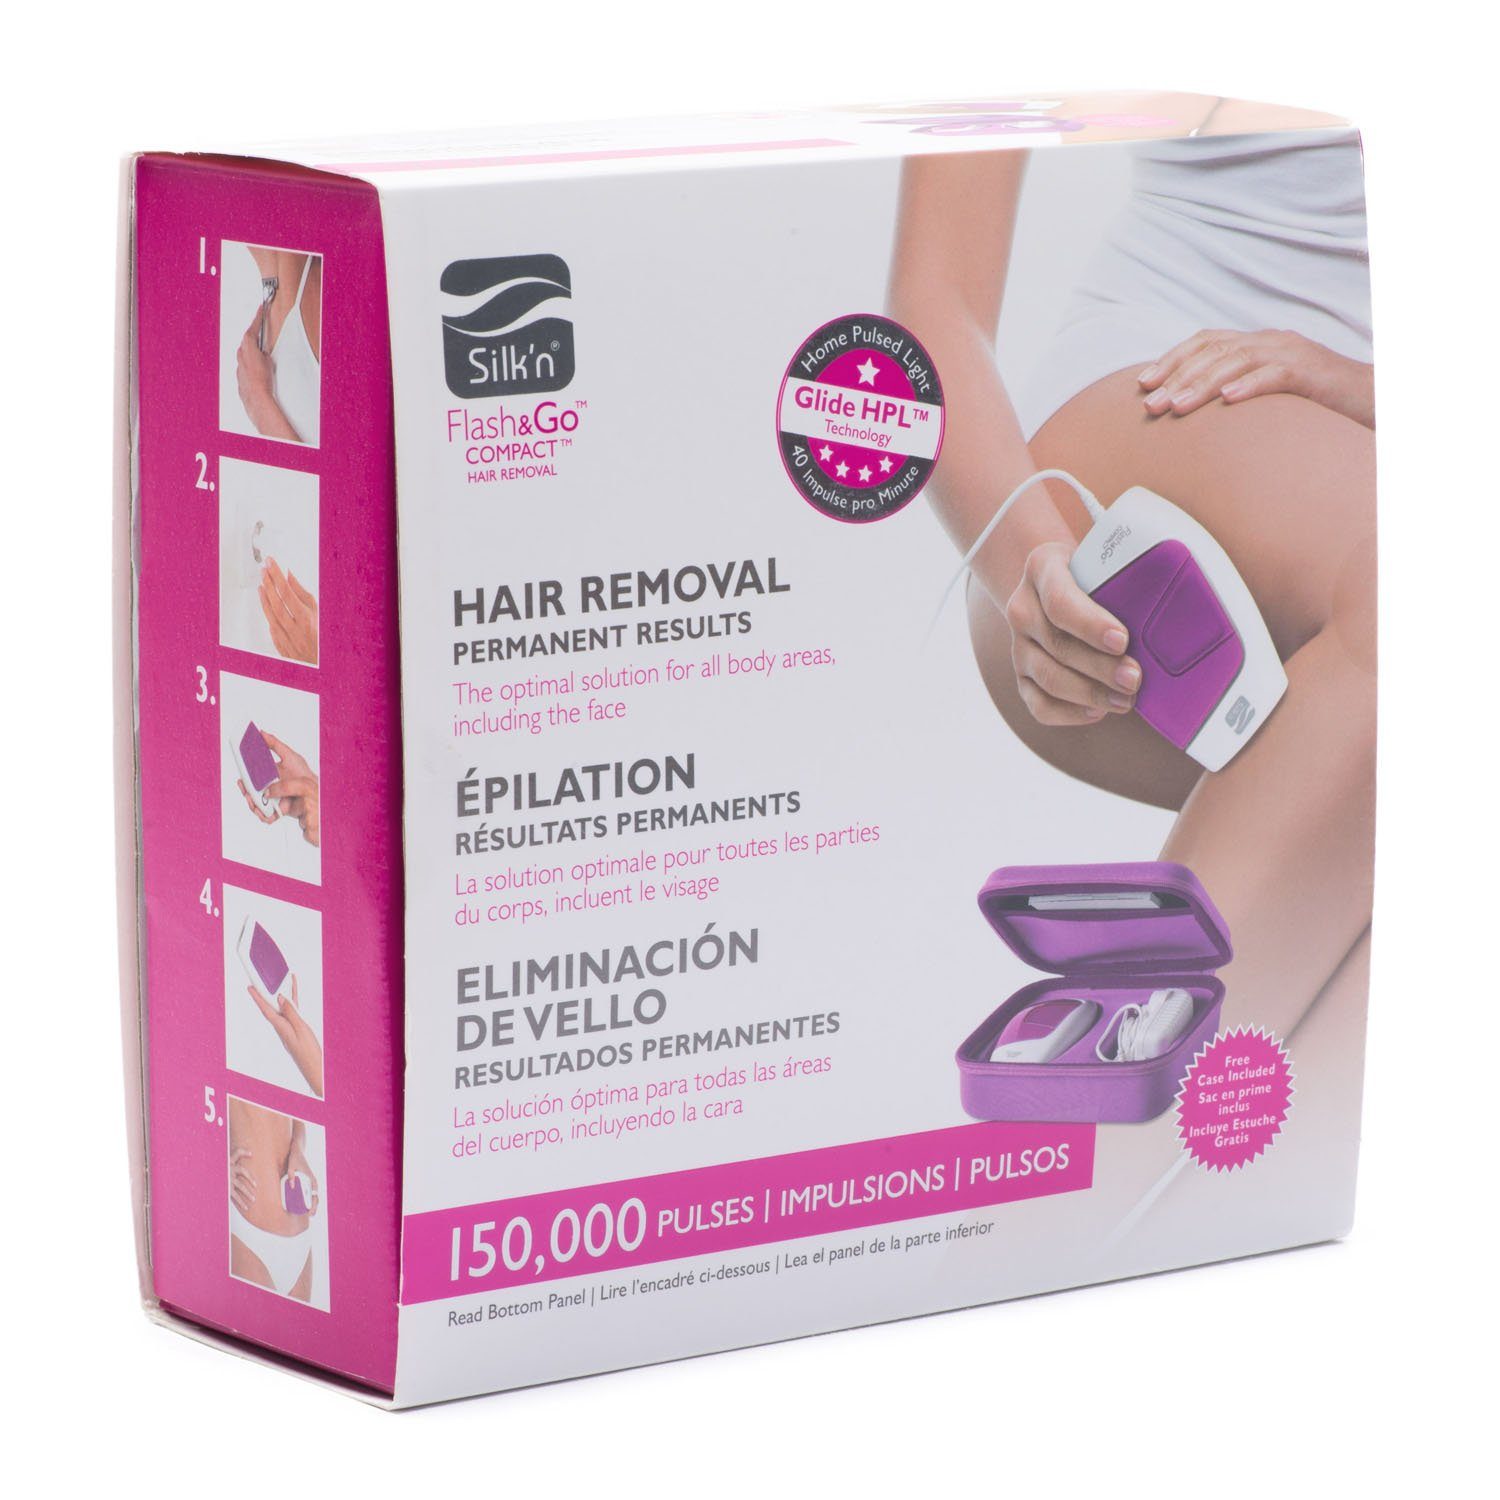 Silk'n Flash&Go Compact Laser Hair Removal Device and Trimmer by Silk'n (Image #2)